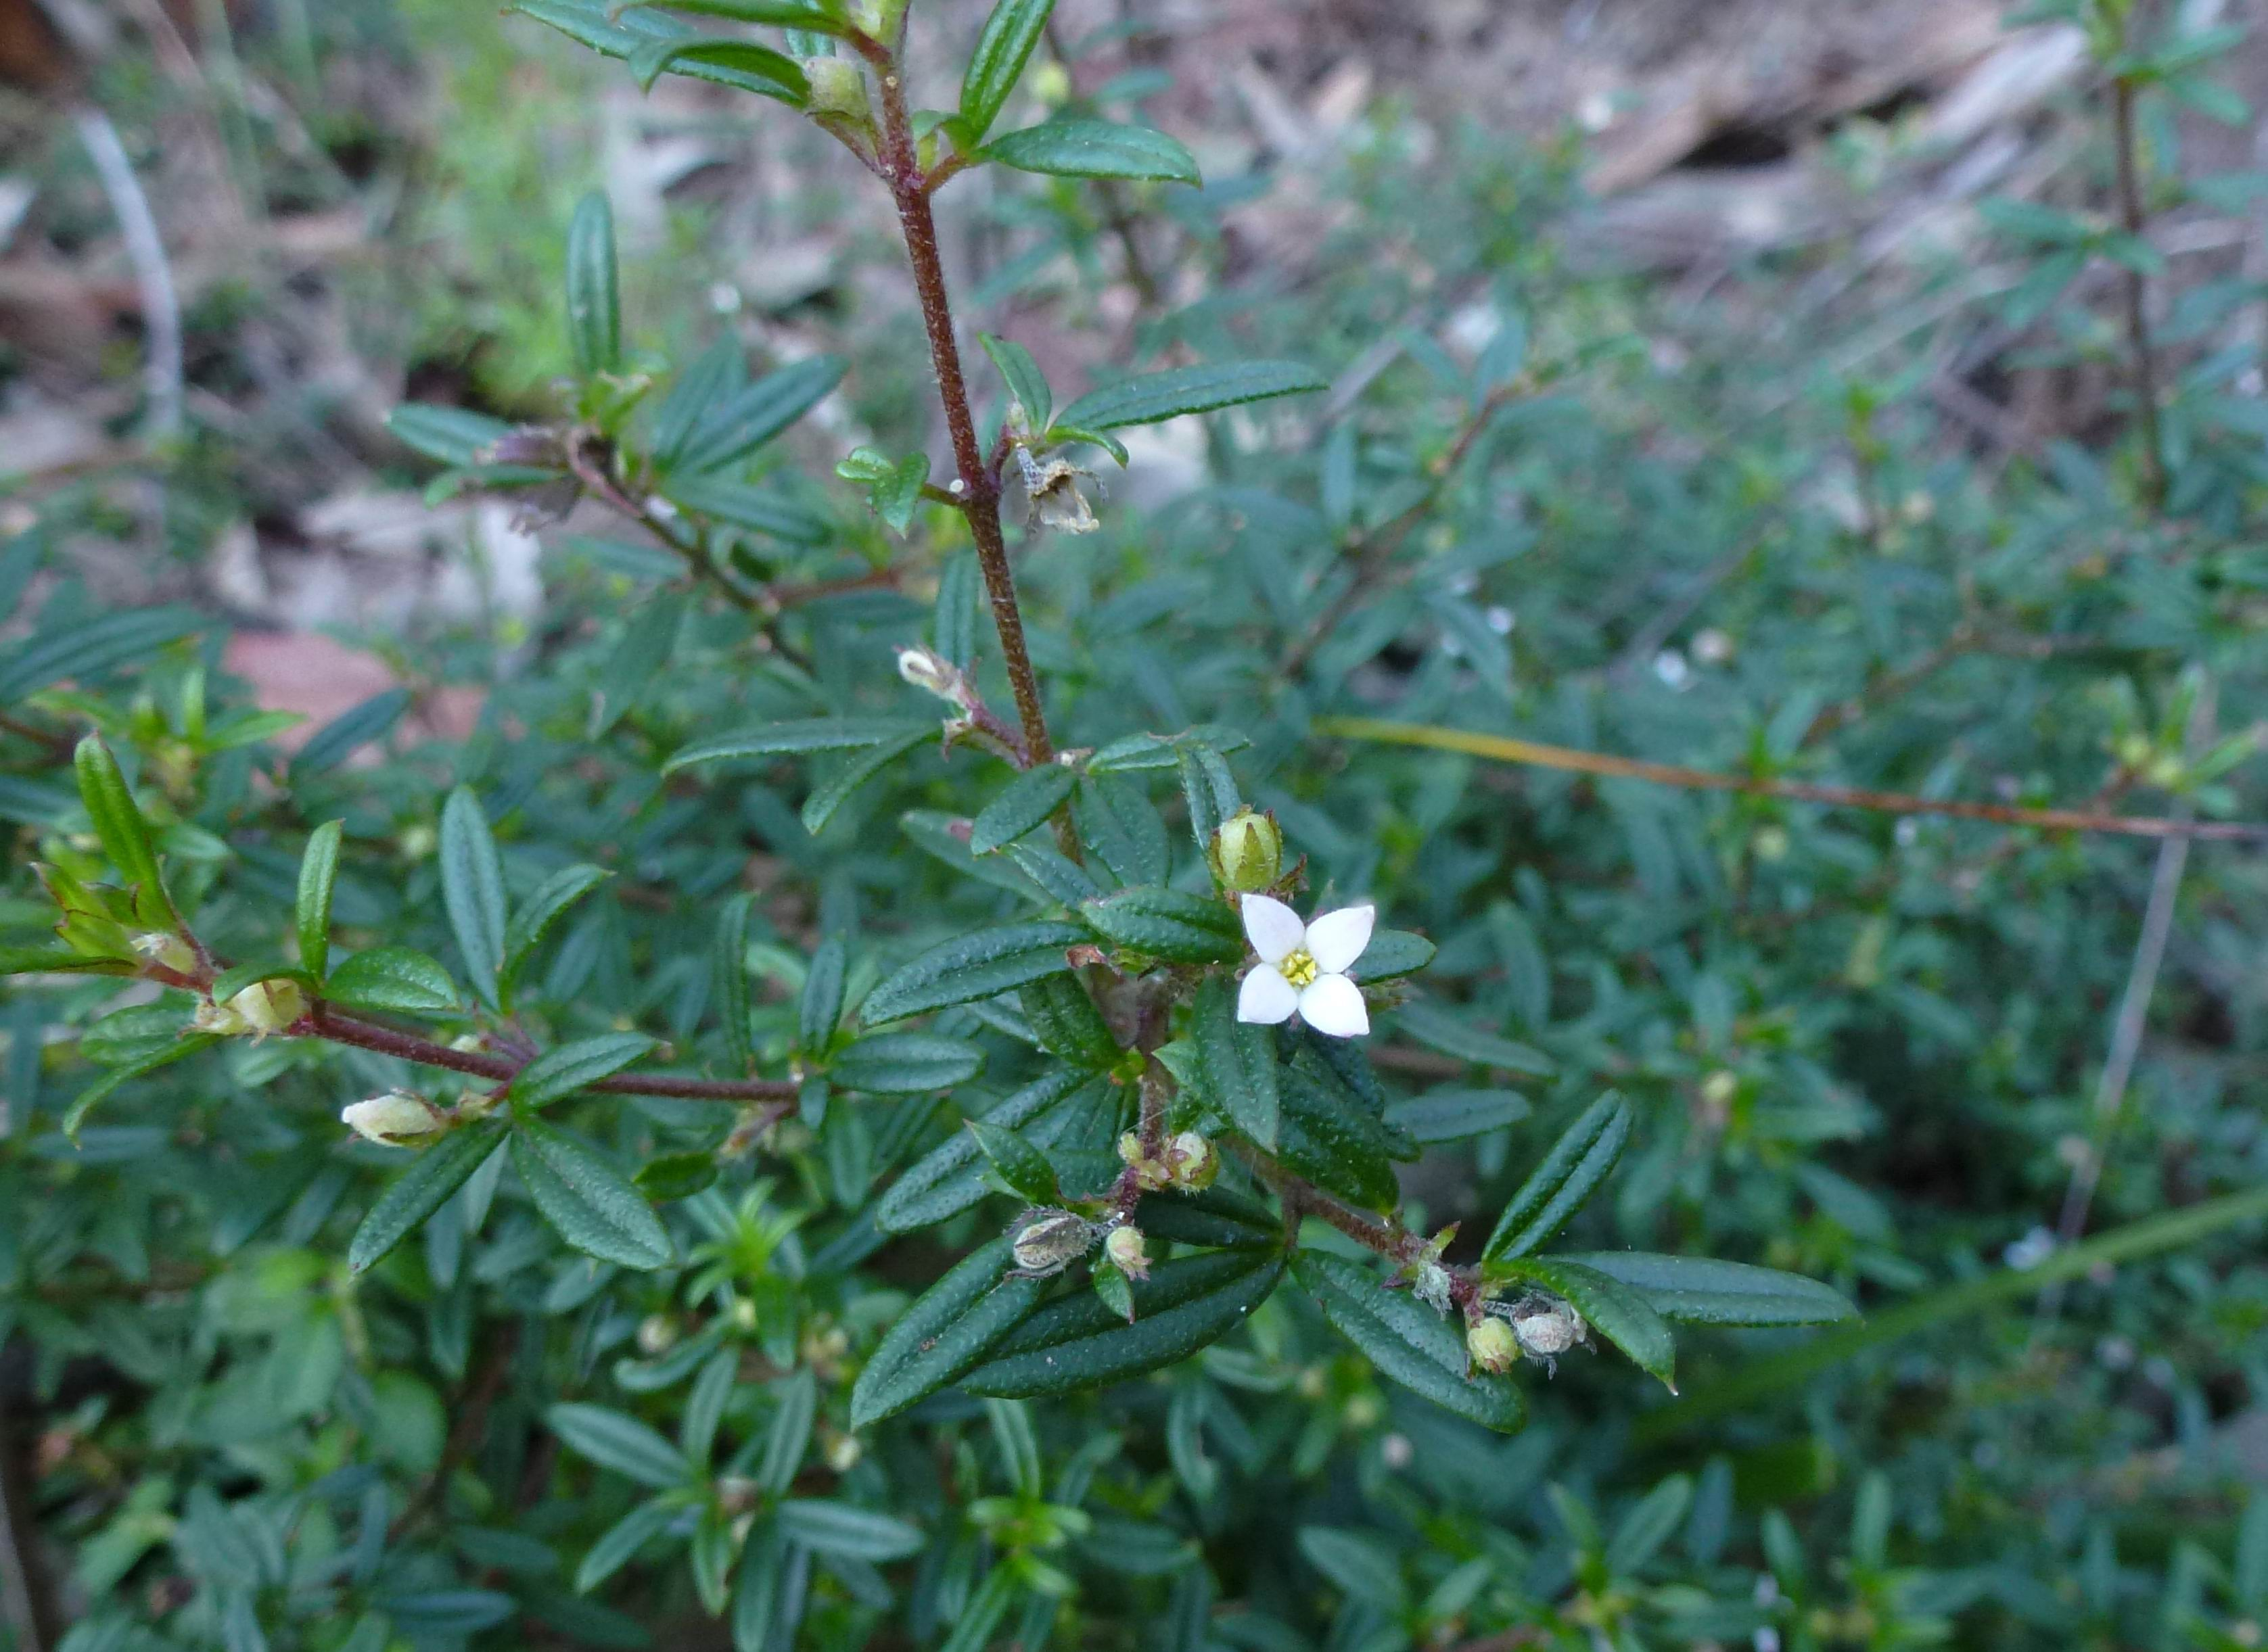 Oatley park flowers july oatley flora fauna conservation society low shrub with leaves in 3 stems hairy small white flowers with 4 petals sheltered slopes including headland track mightylinksfo